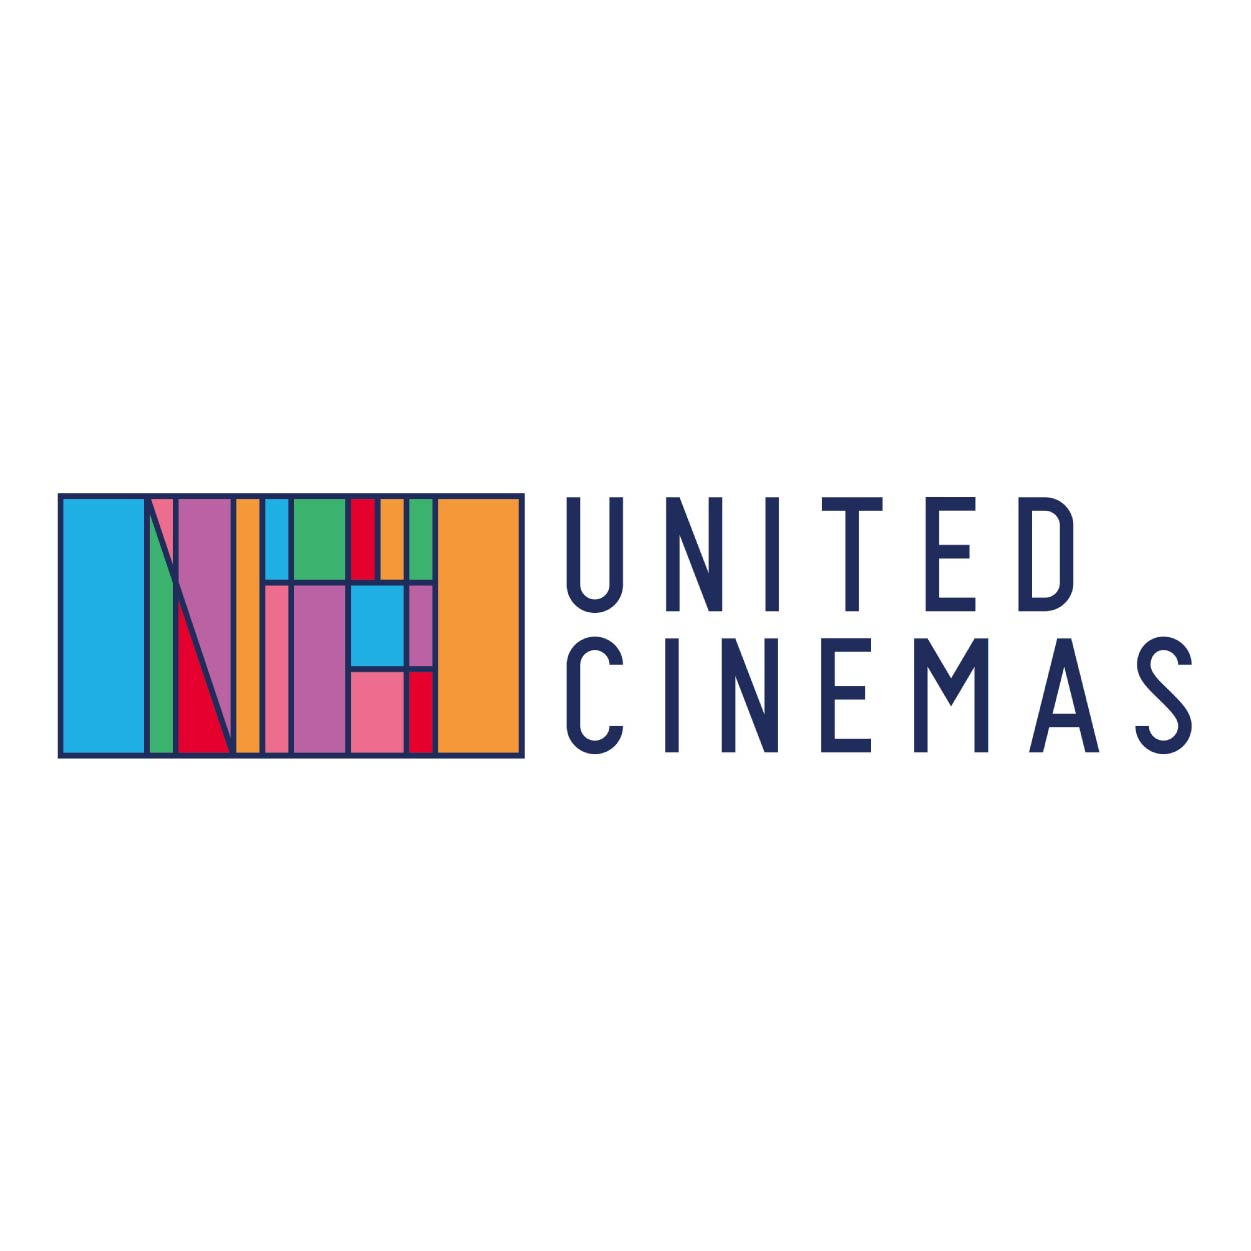 UNITED CINEMAS